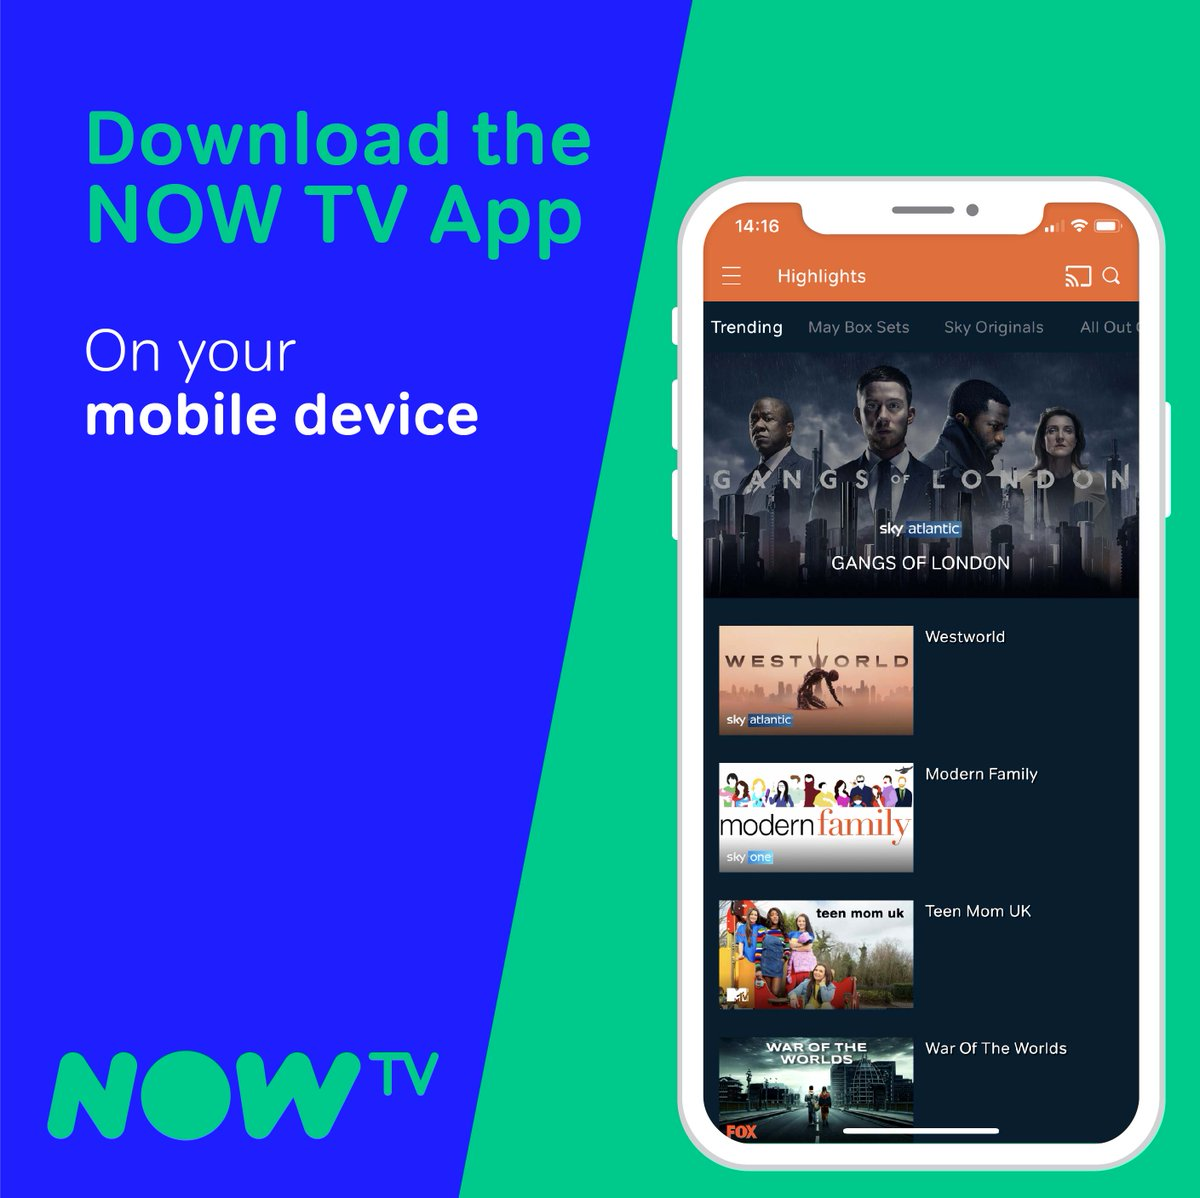 Check out how to download the NOW TV app on your mobile device following these 3 simple steps below👇